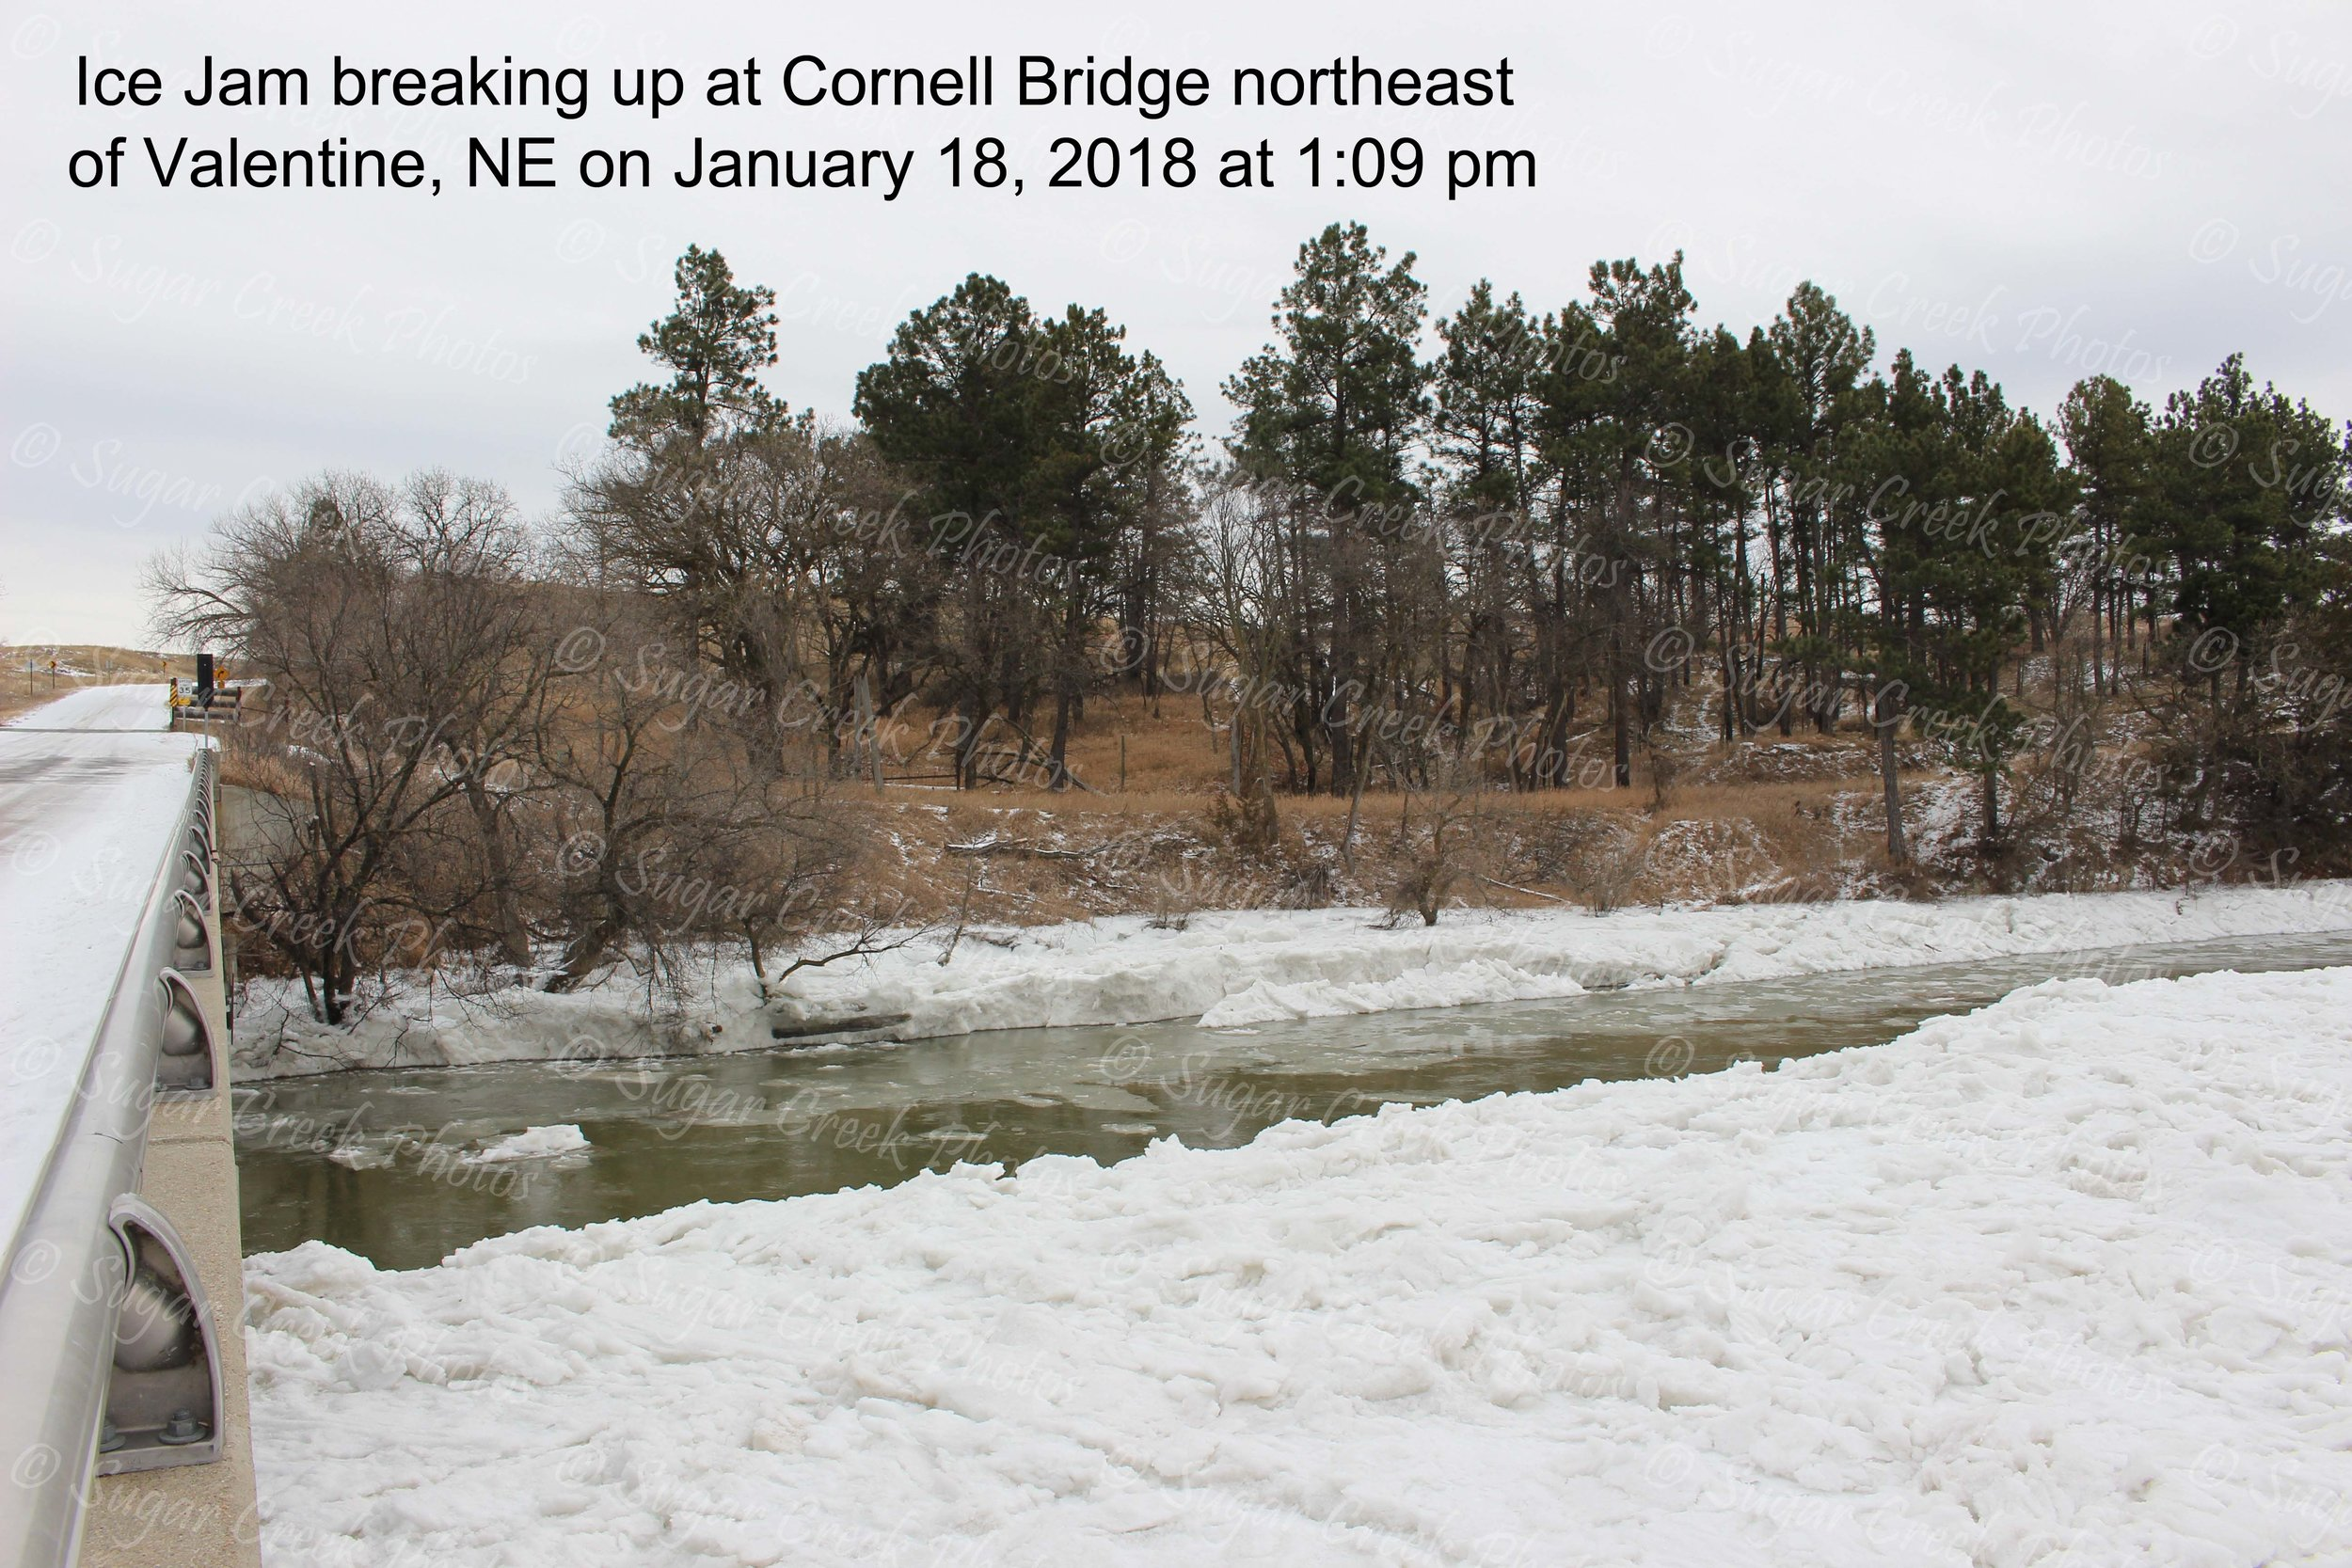 SCP ice jam at Cornell Jan 18 pm WM IMG_7982.jpg